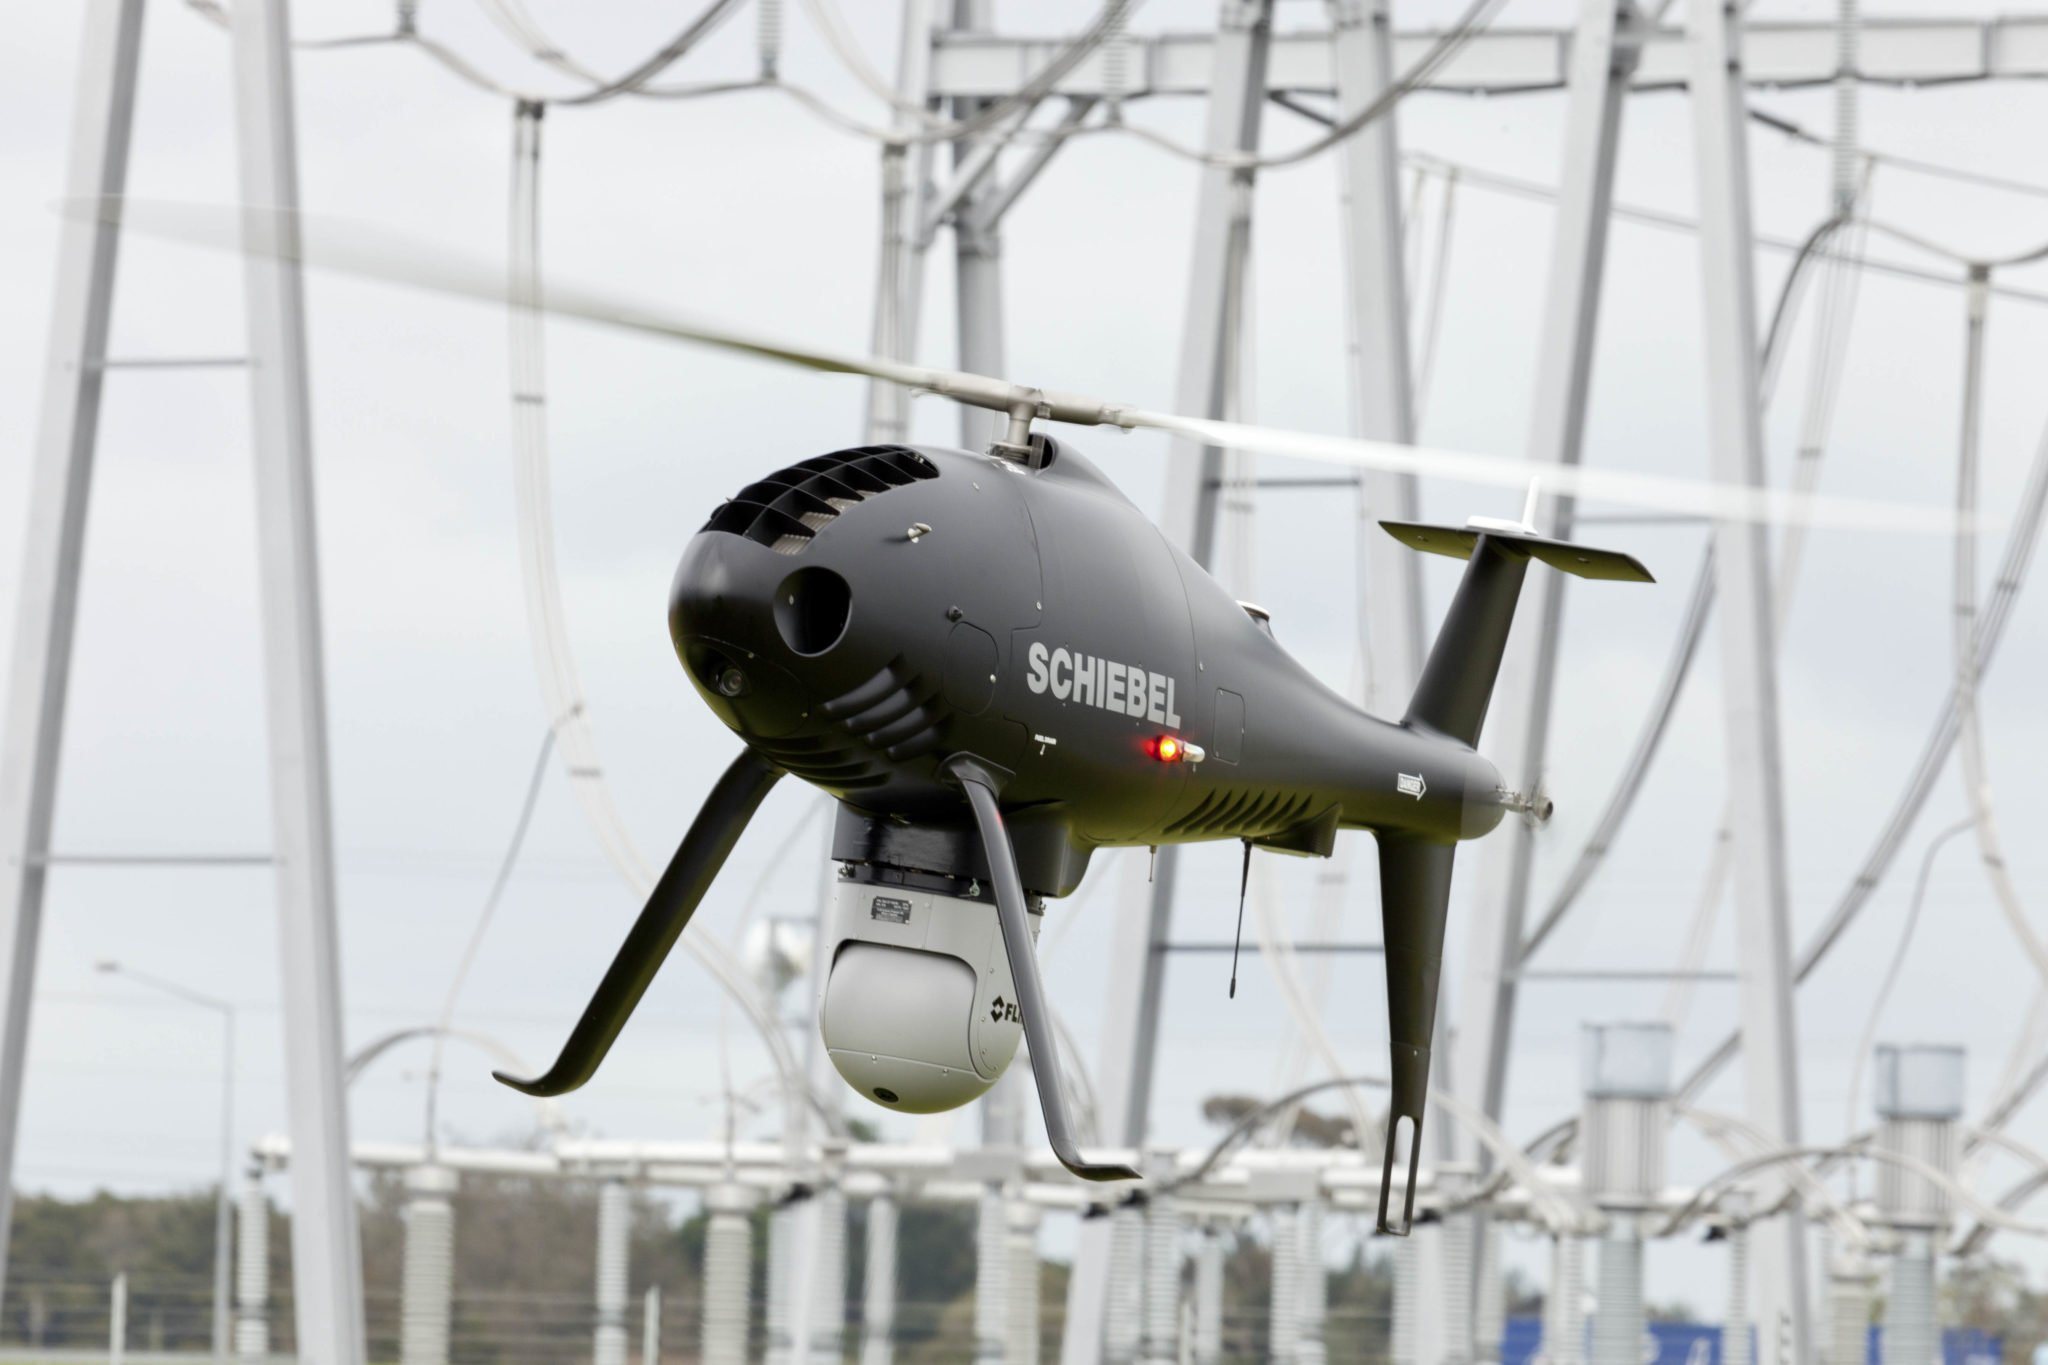 Nz Transpower Permits Rpas Drones For Grid Works